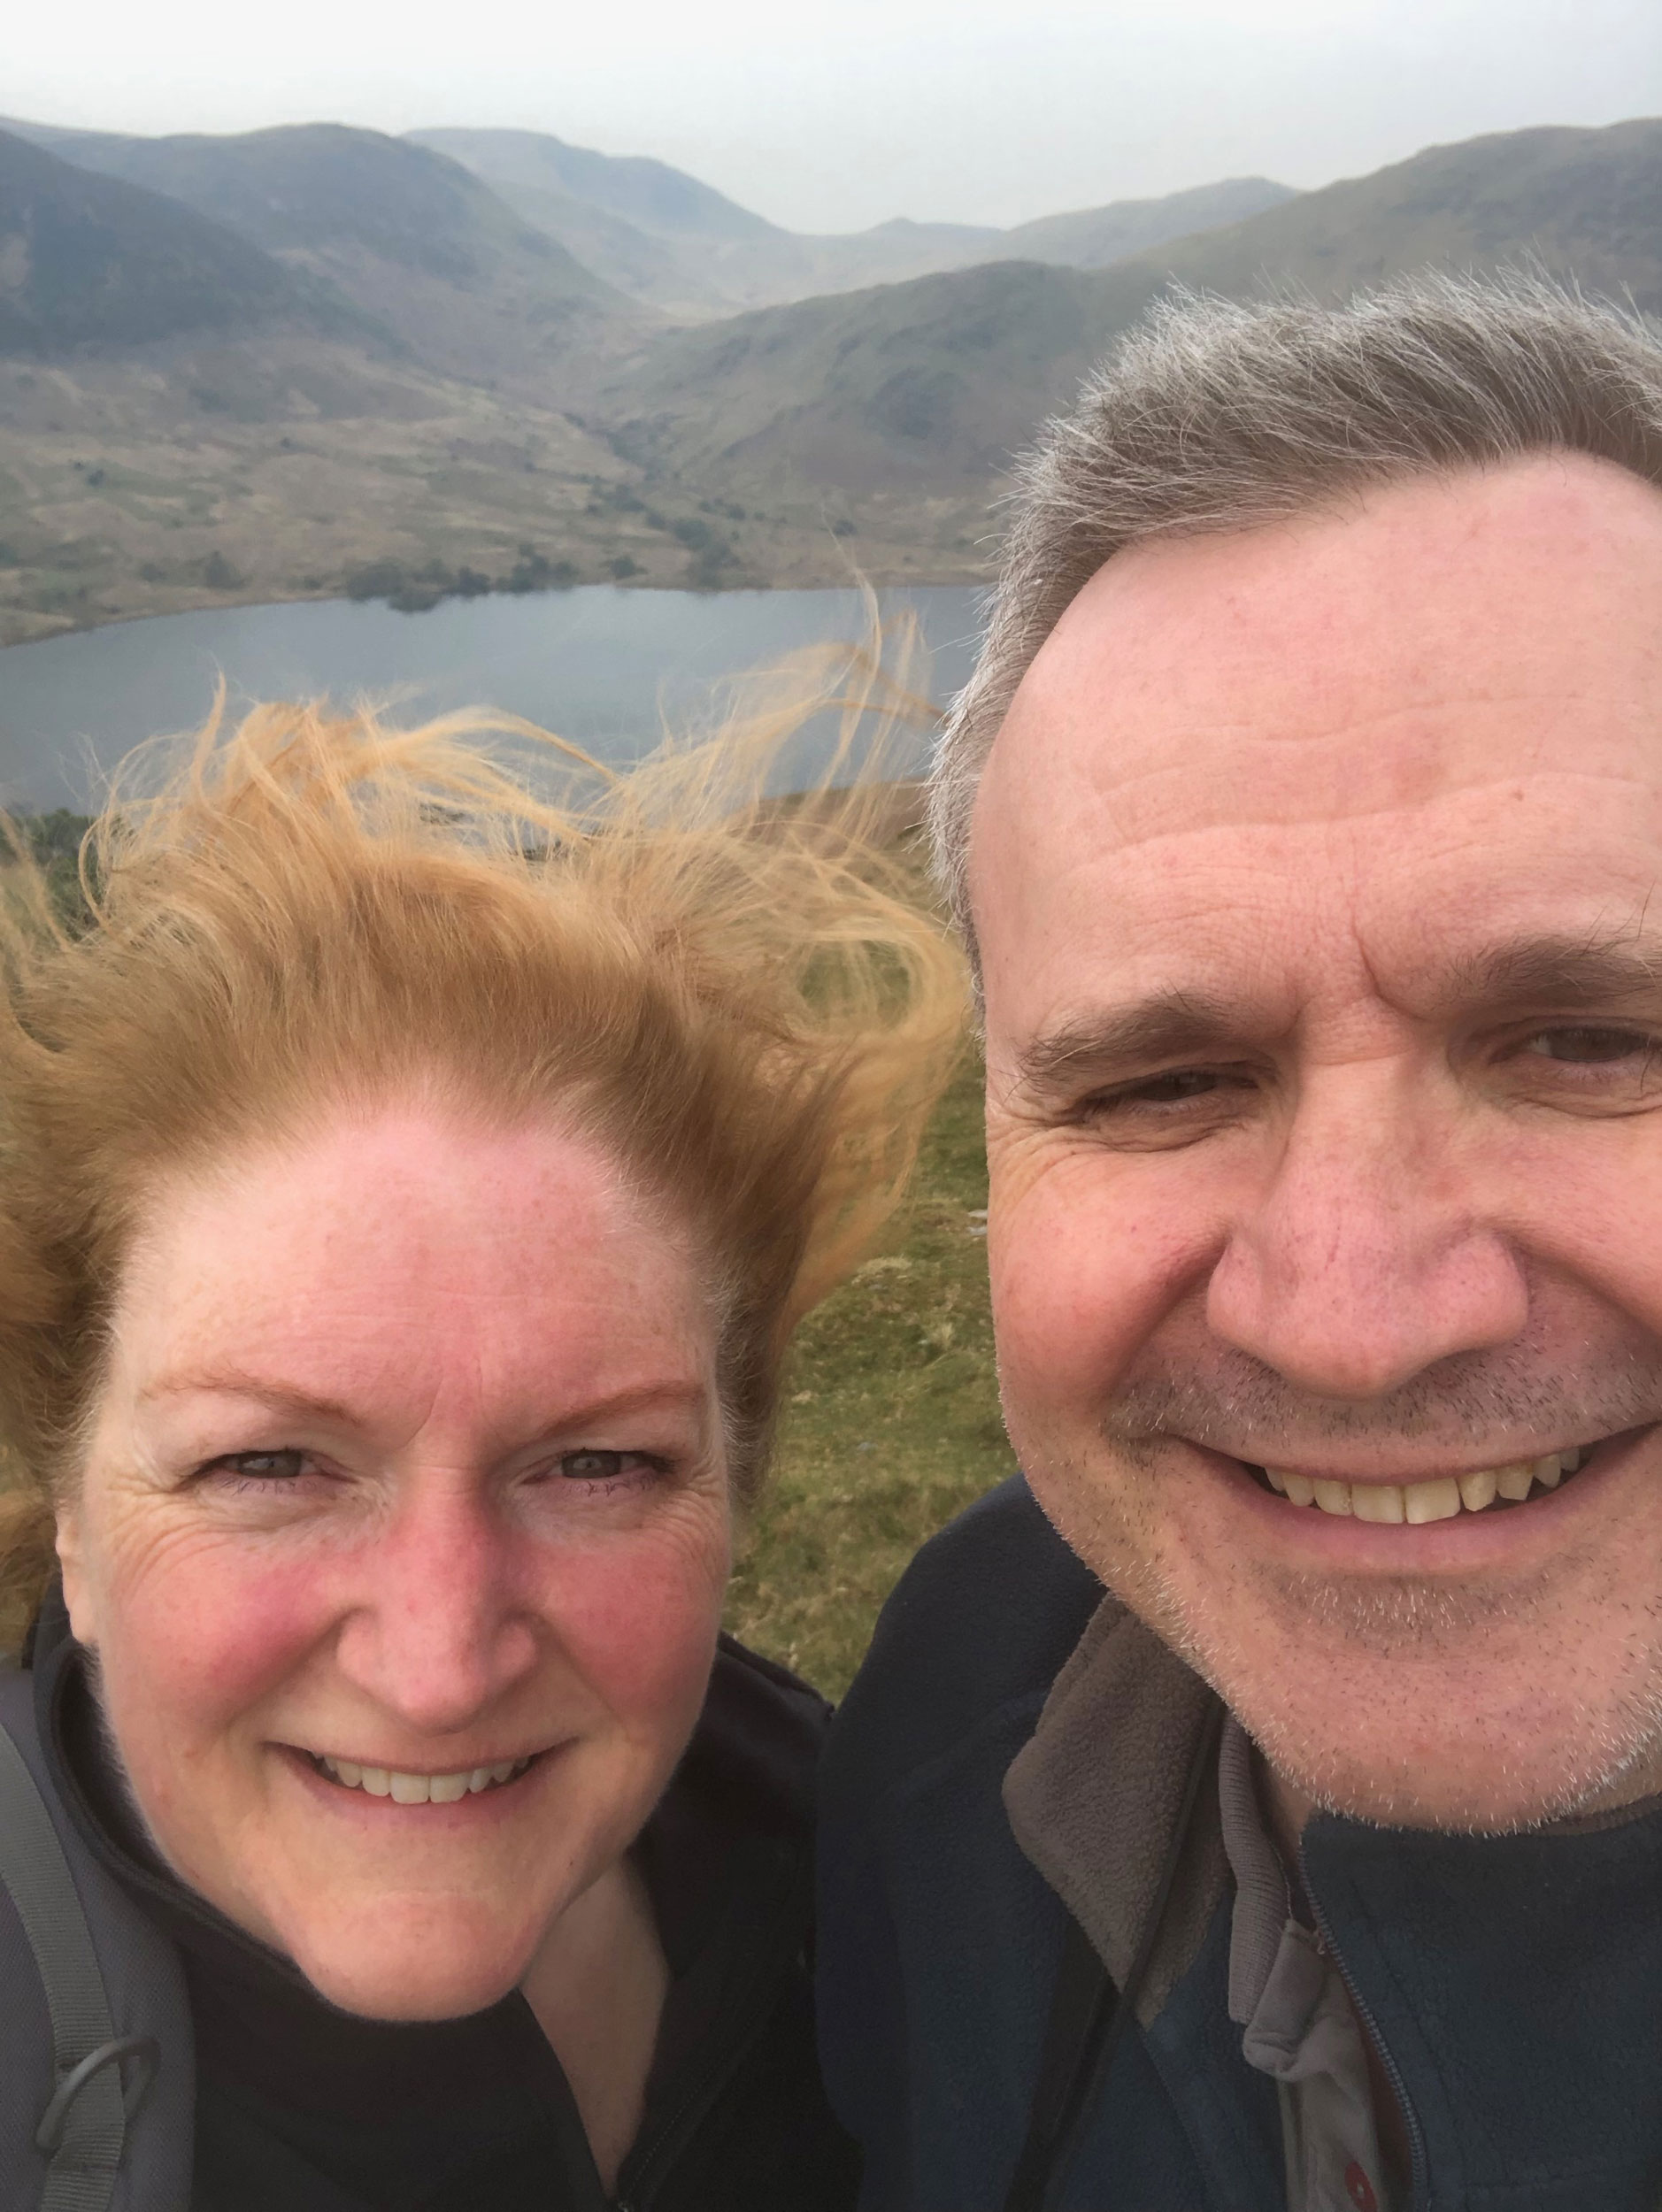 sue_and_steve_rannerdale.jpg